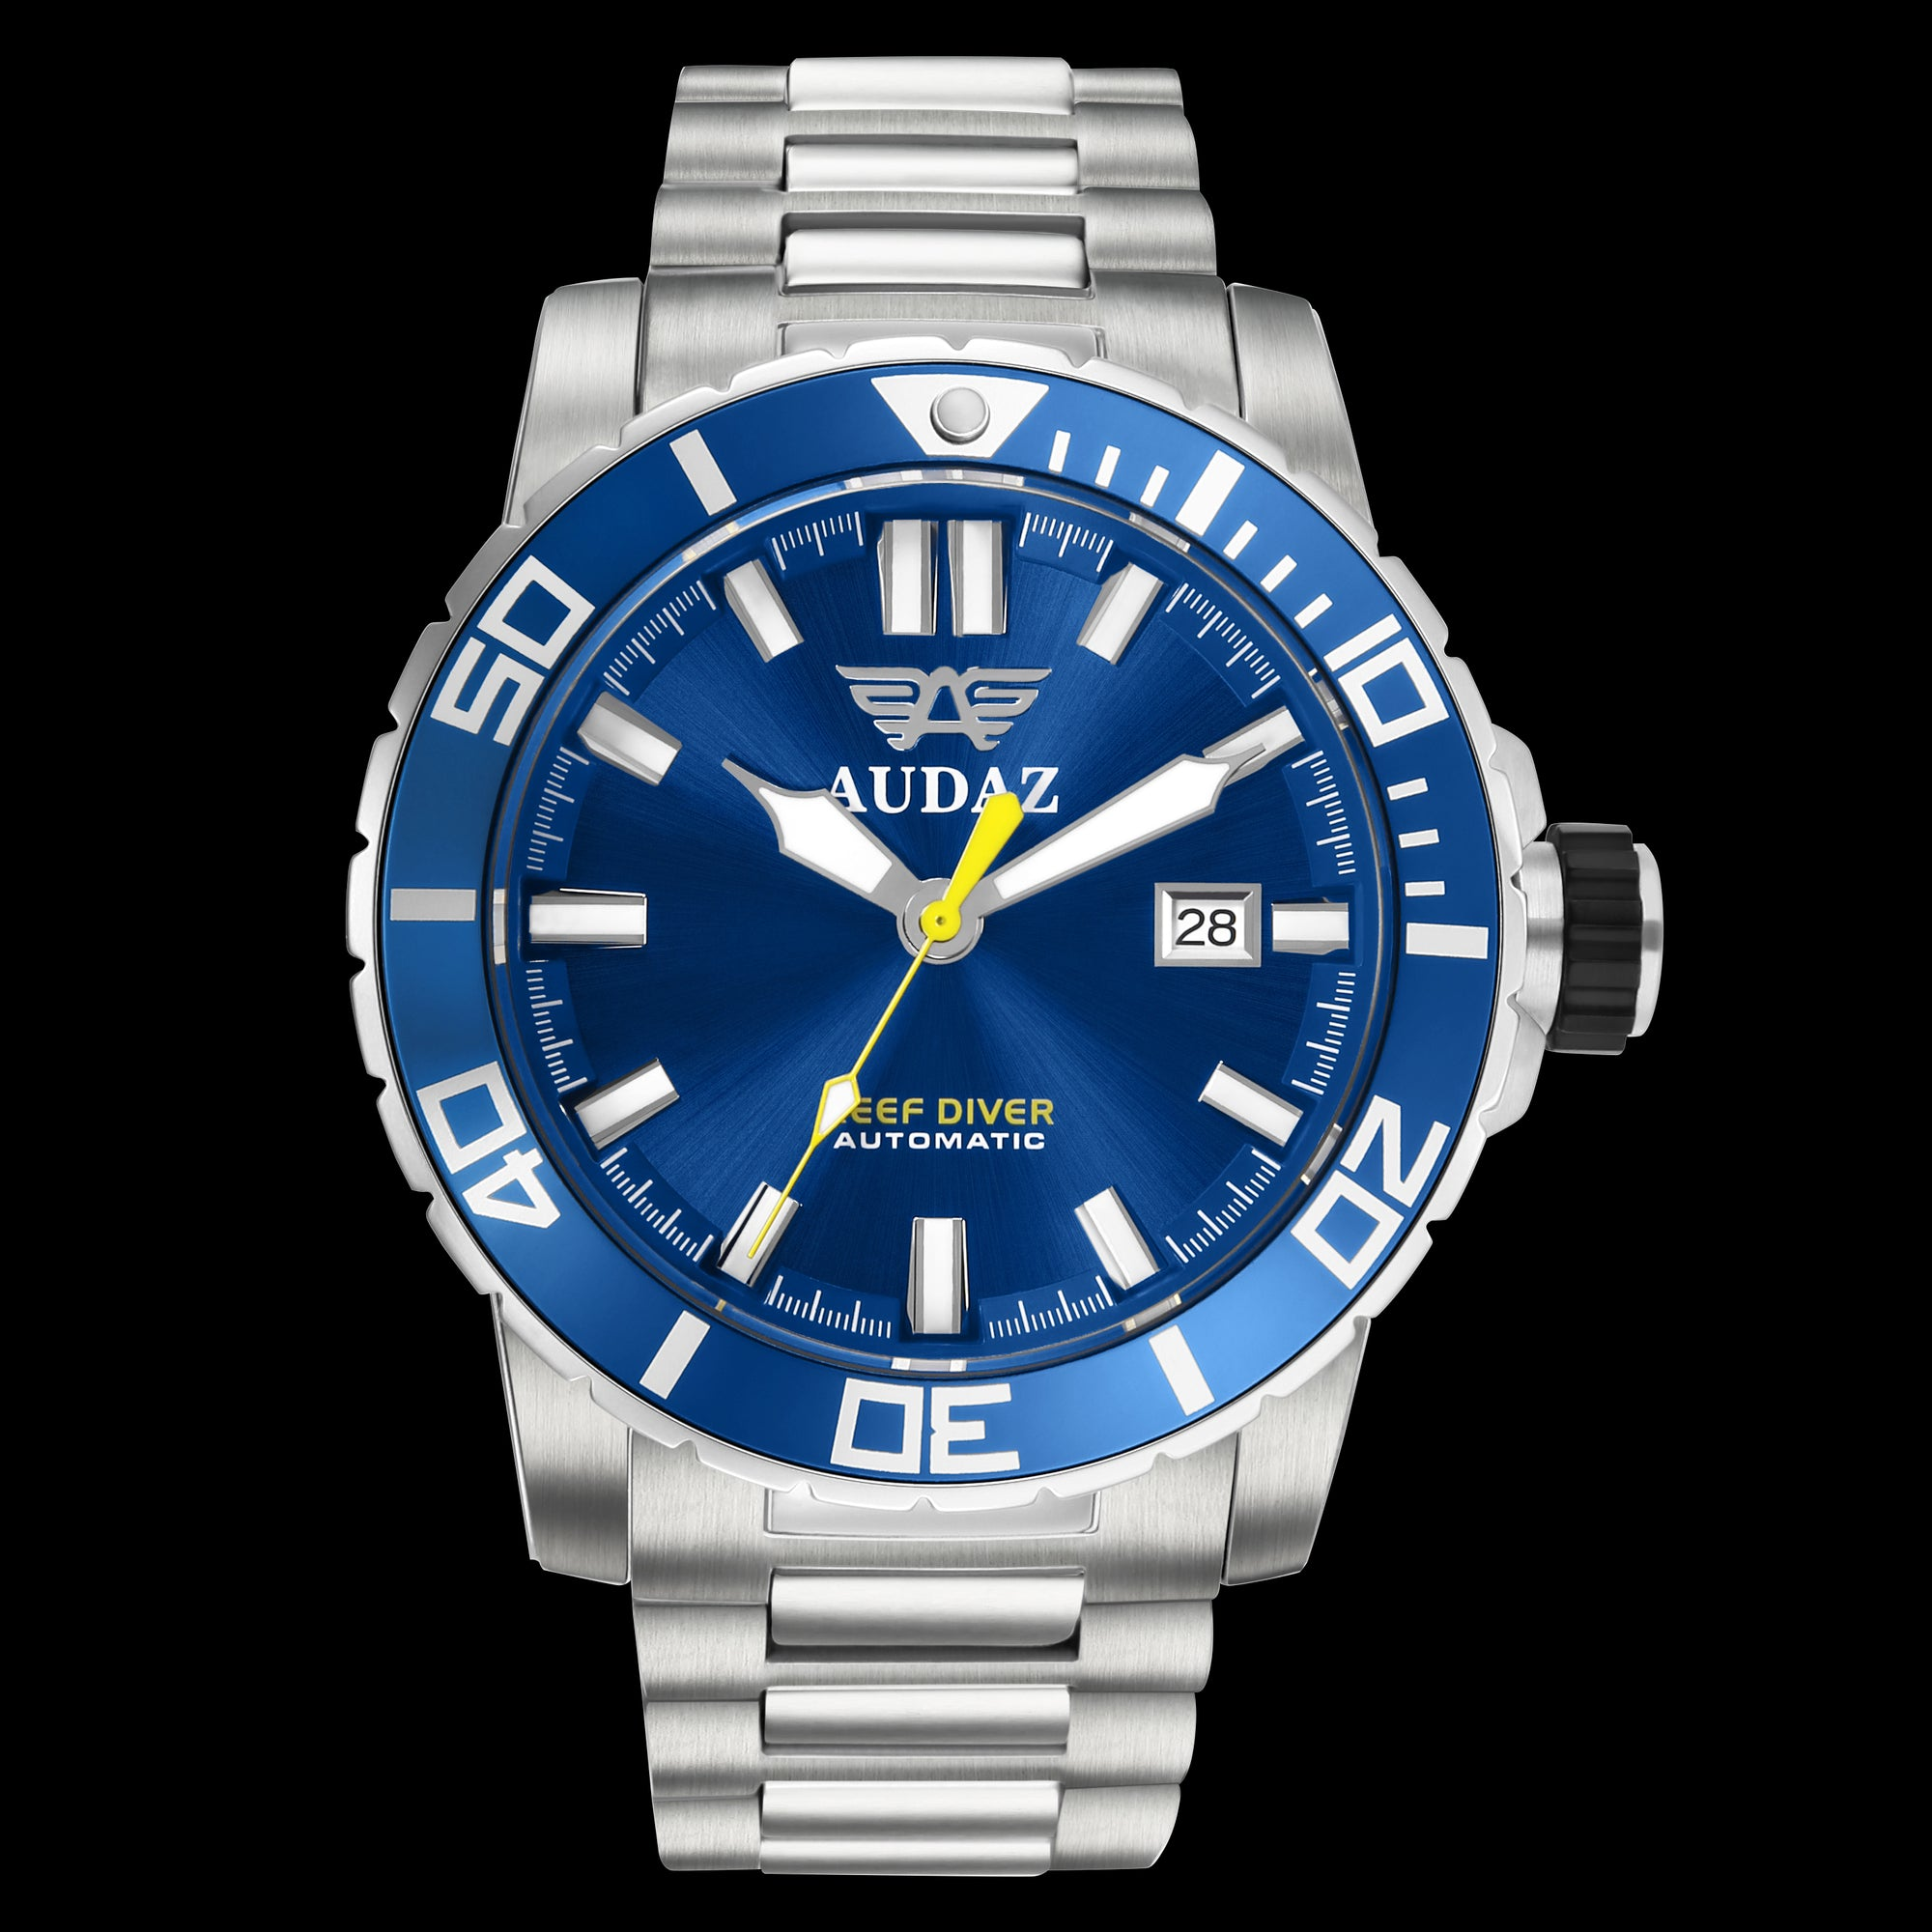 Reef Diver Watches ADZ-2040-02